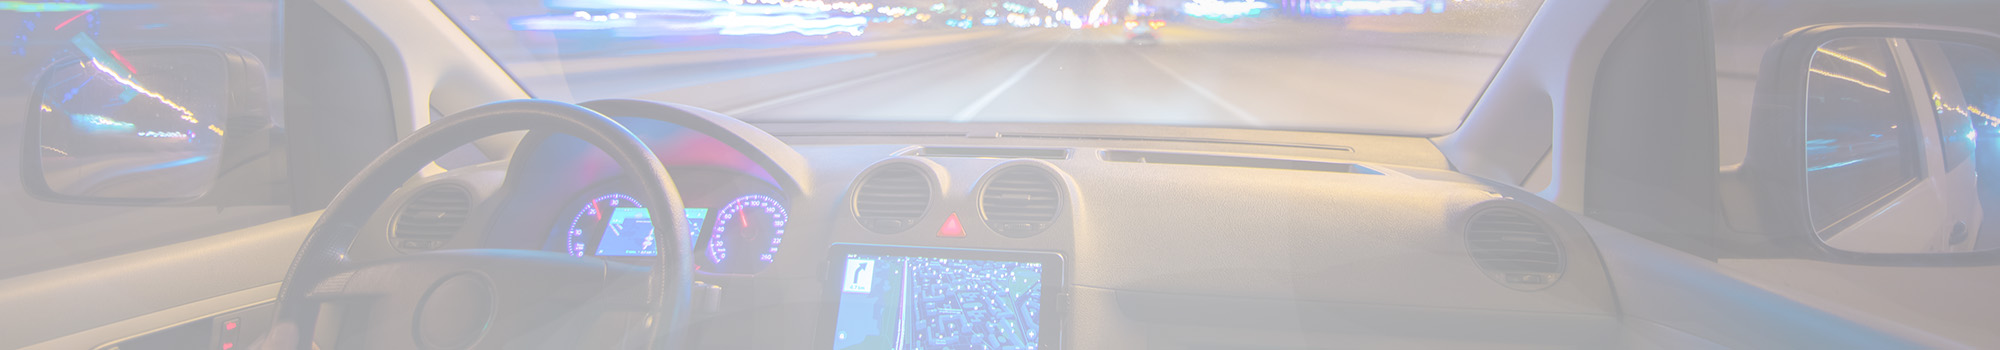 Lasers for the Automotive Industry   Coherent